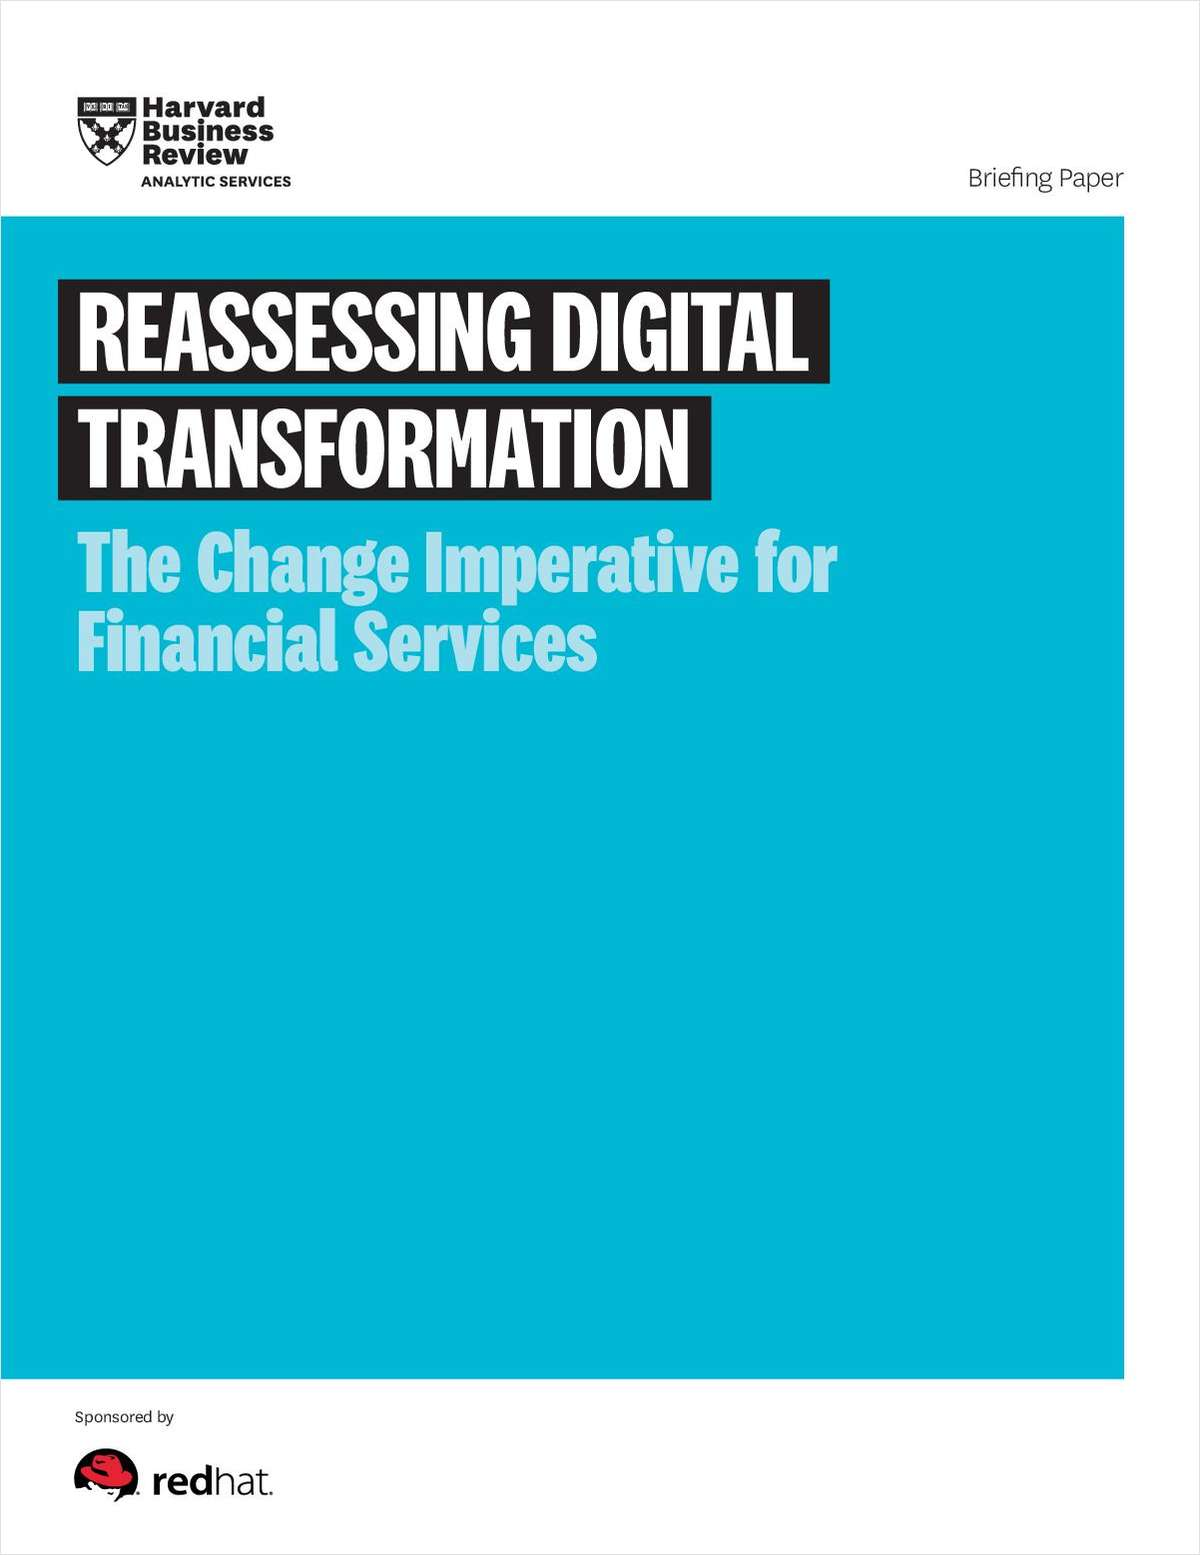 Reassessing Digital Transformation